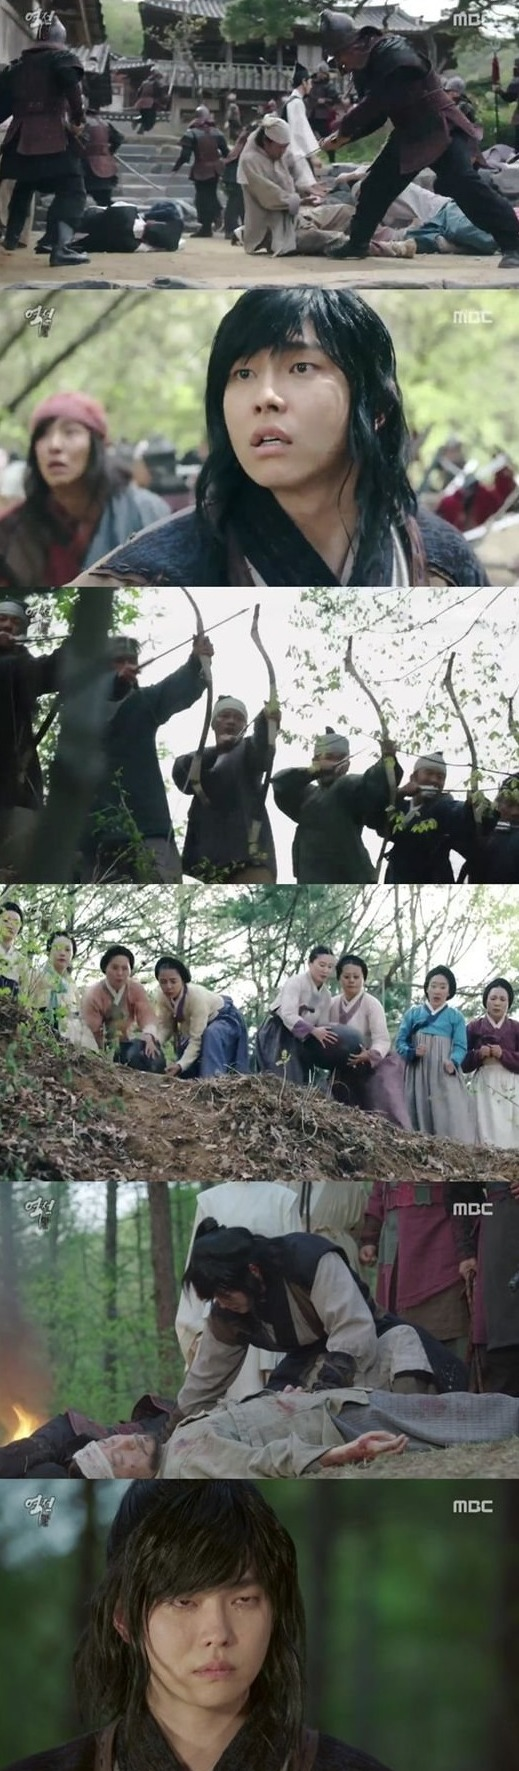 [Spoiler] Added episode 26 captures for the Korean drama 'Rebel: Thief Who Stole the People'